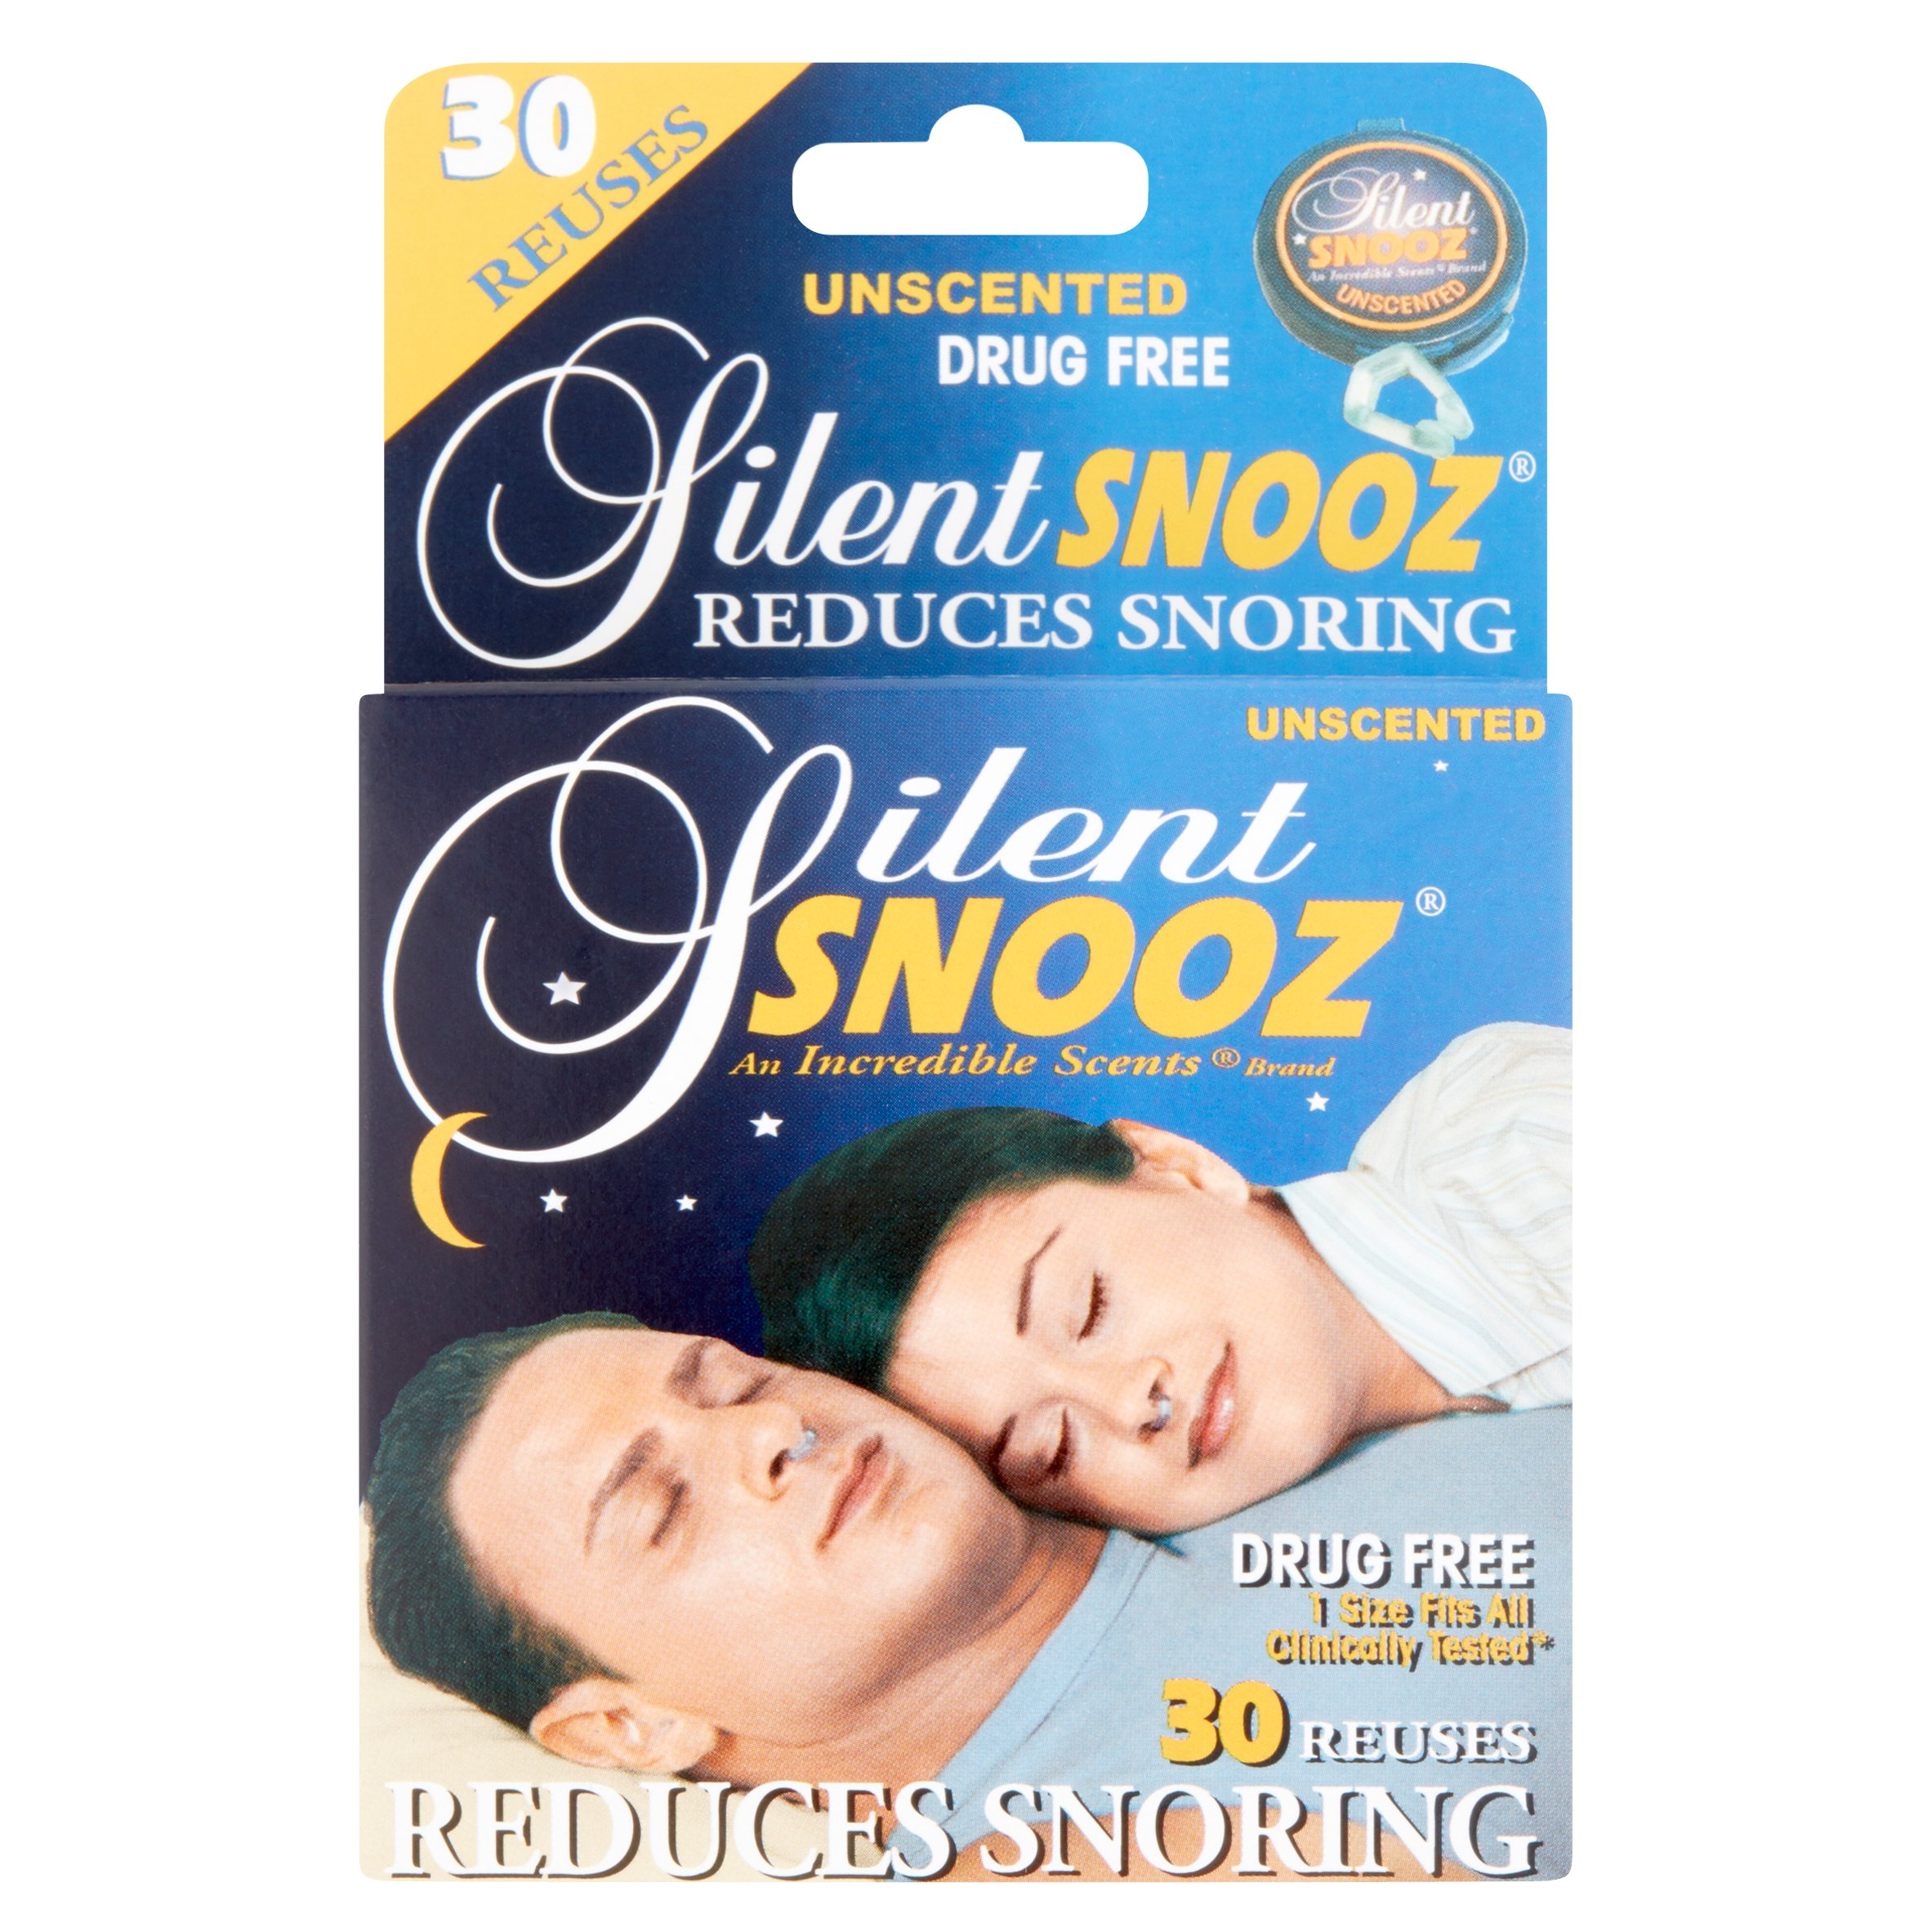 Silent Snooz Unscented Snoring Aid